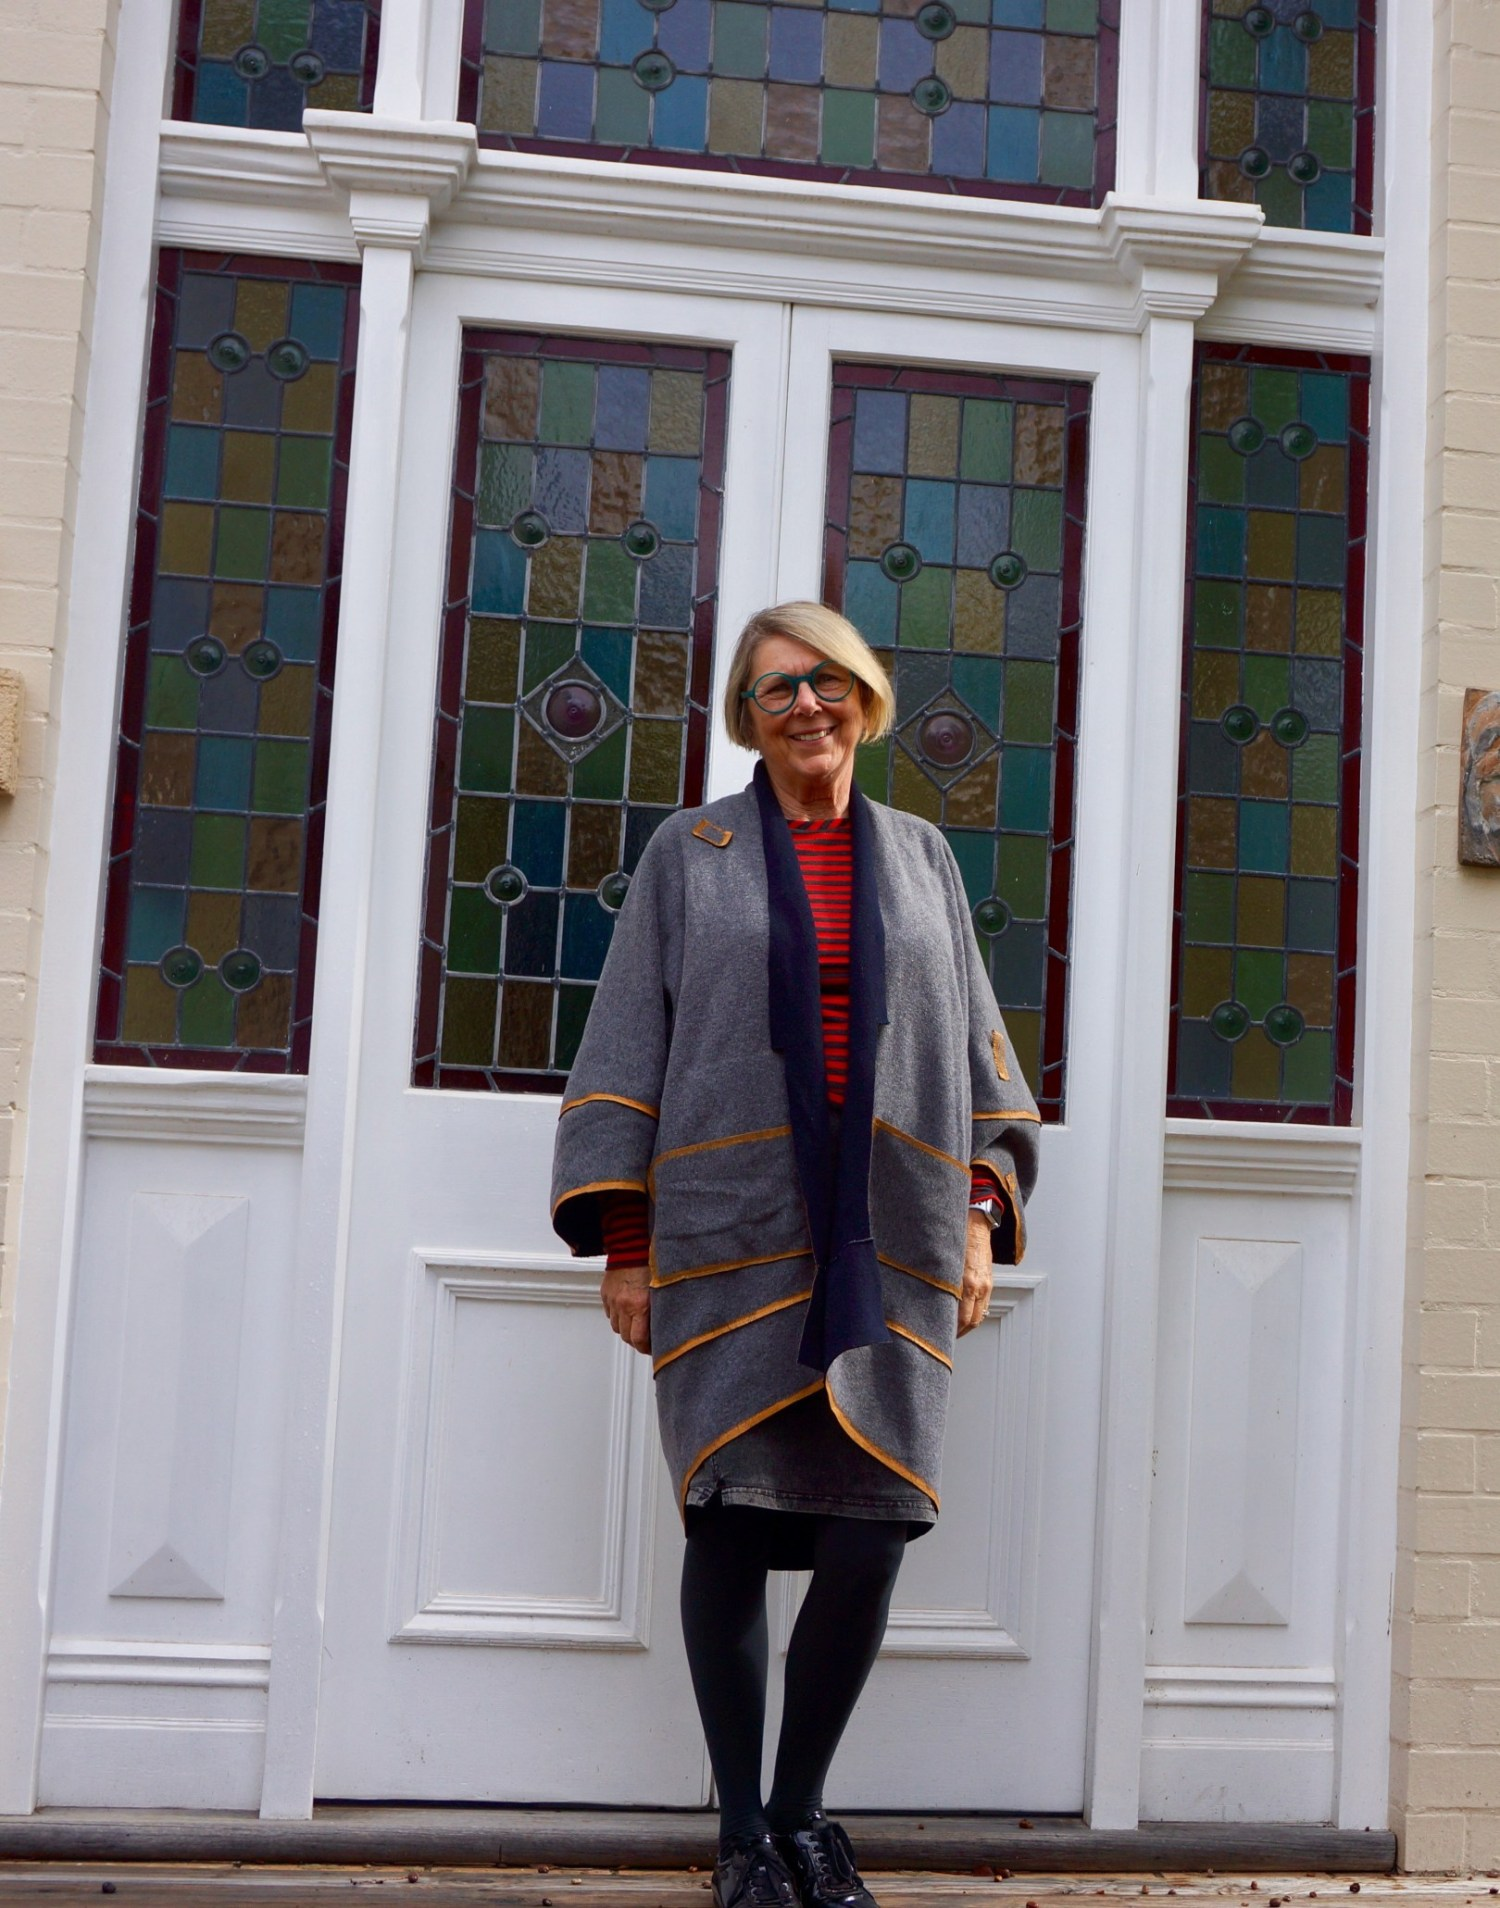 Sue stands in front of a white door with stained glass panels. She wears the 'nog coat' described in the post.